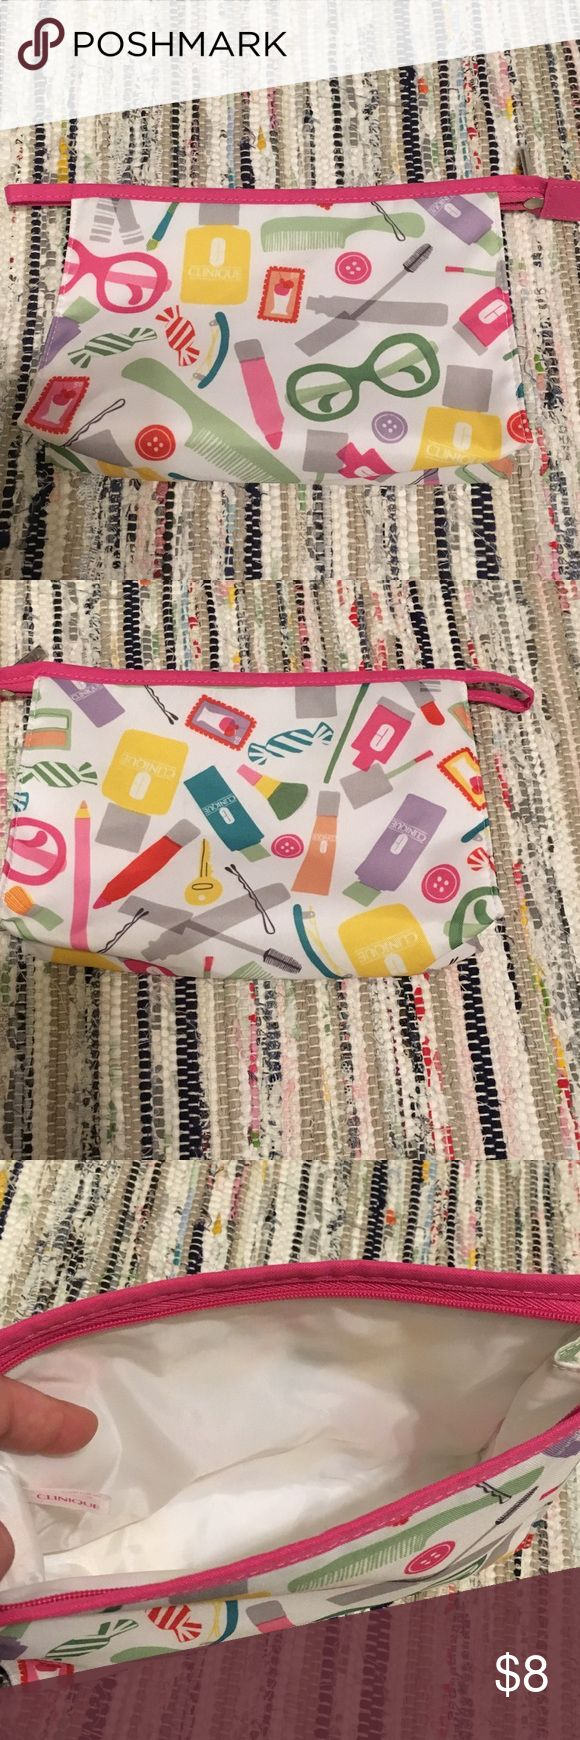 Clinique make up bag Never used! Clean inside 9in across 6 inches length Clinique Bags Cosmetic Bags & Cases